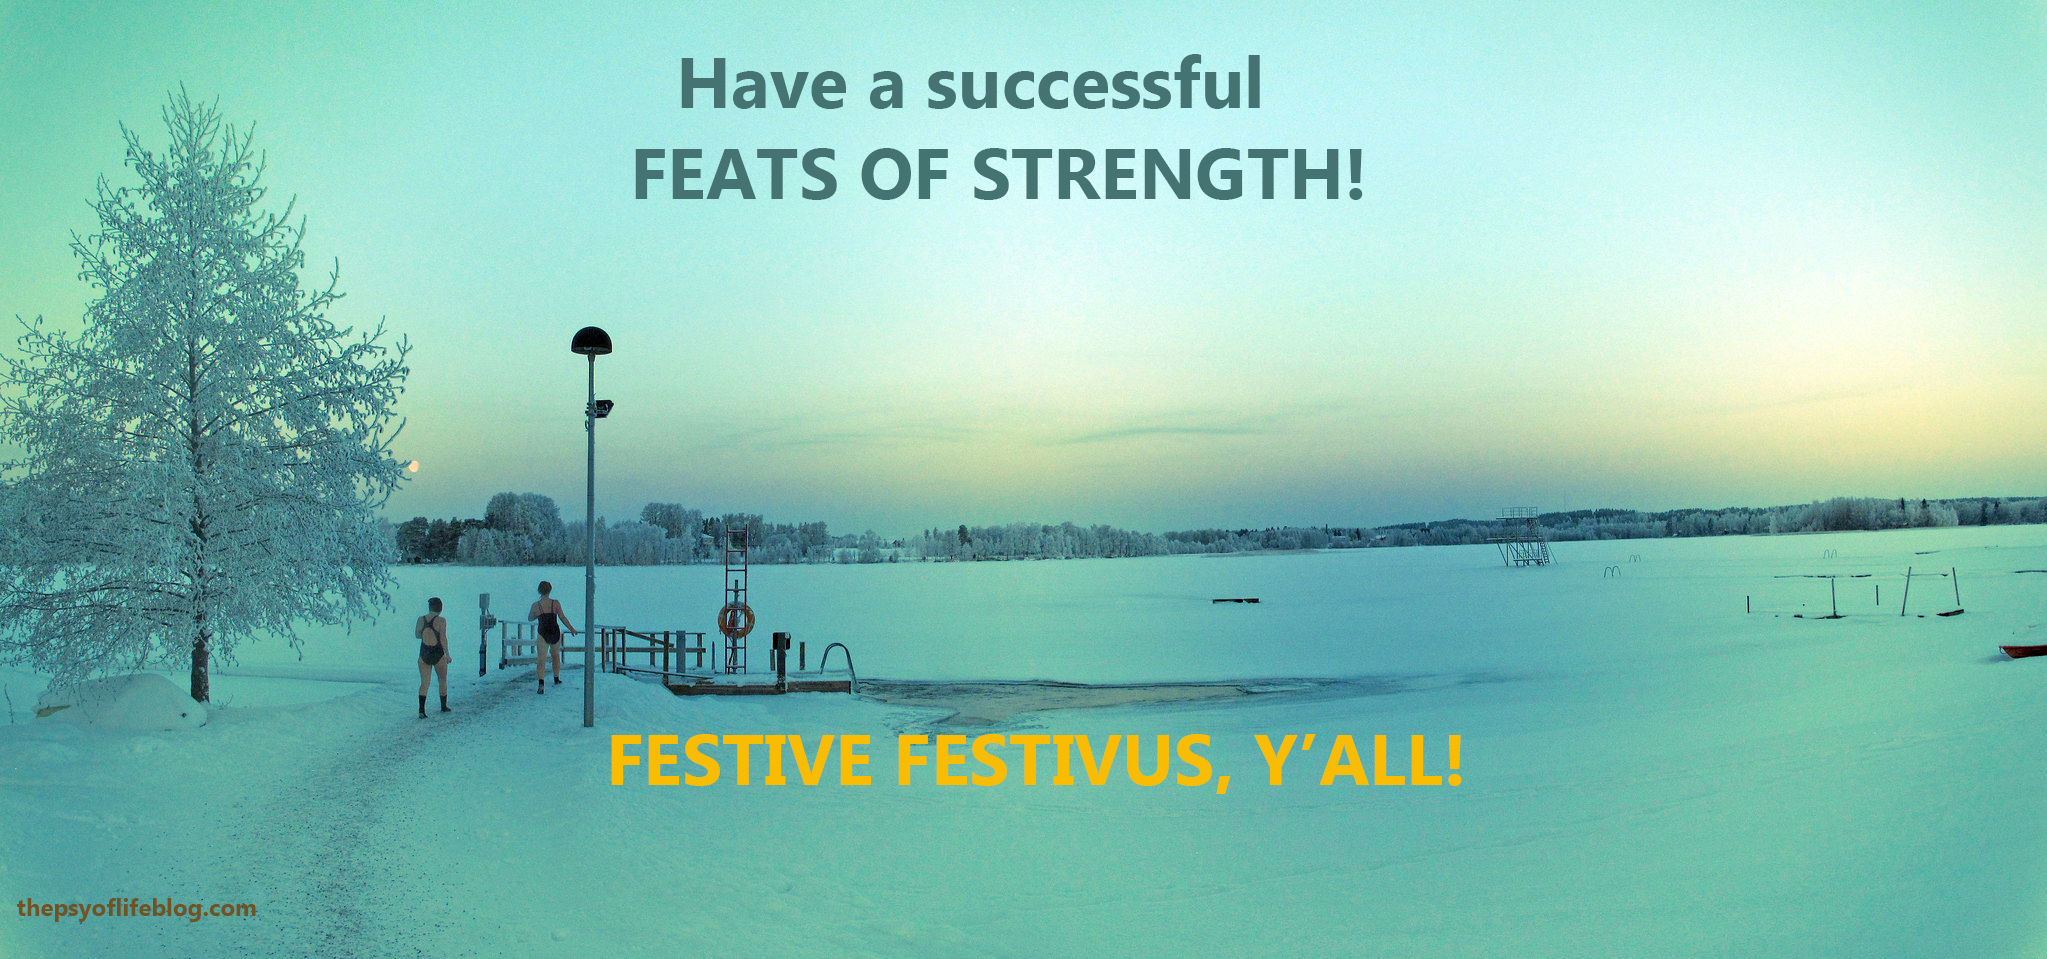 Festivus Card: Feats of Strength Polar Bear Swim